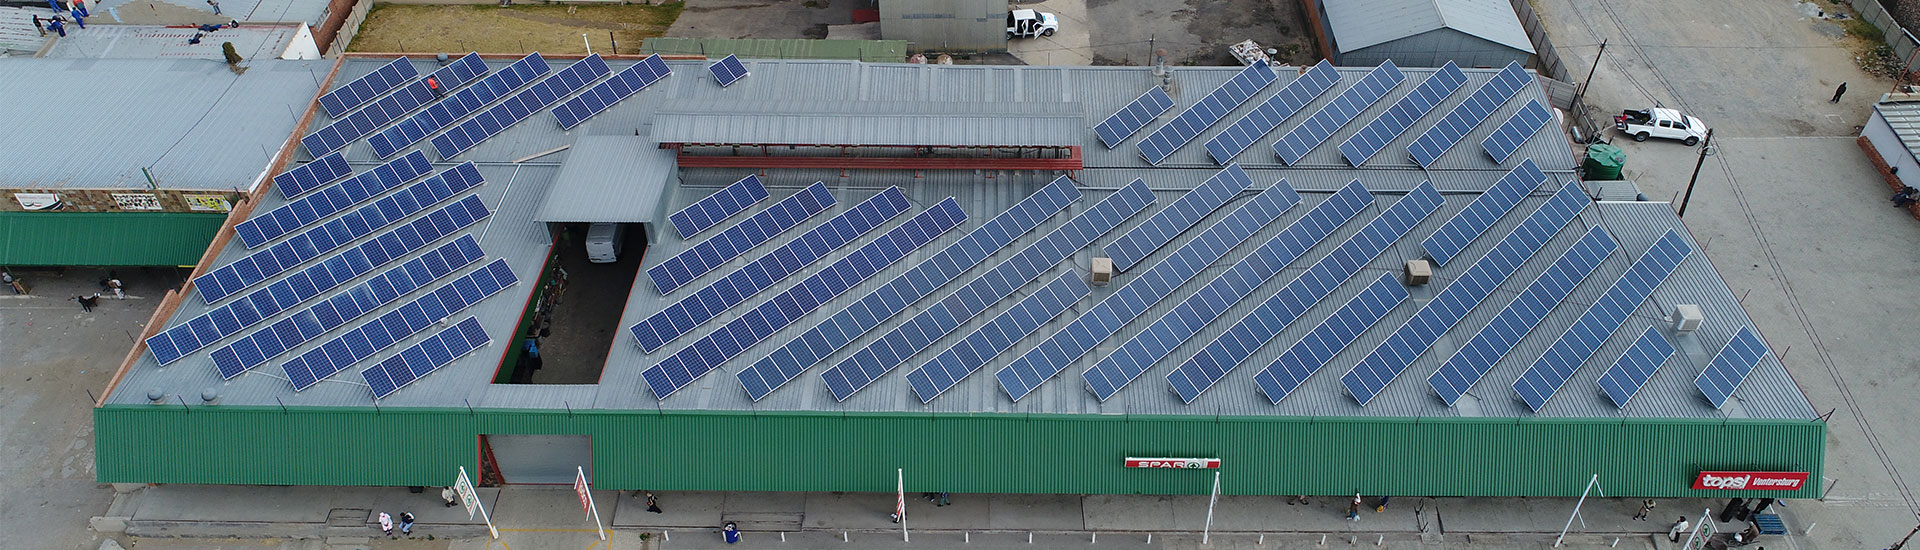 Eco Trades: Solar Power Systems for Shopping Centres (Project: SPAR Ventersburg)